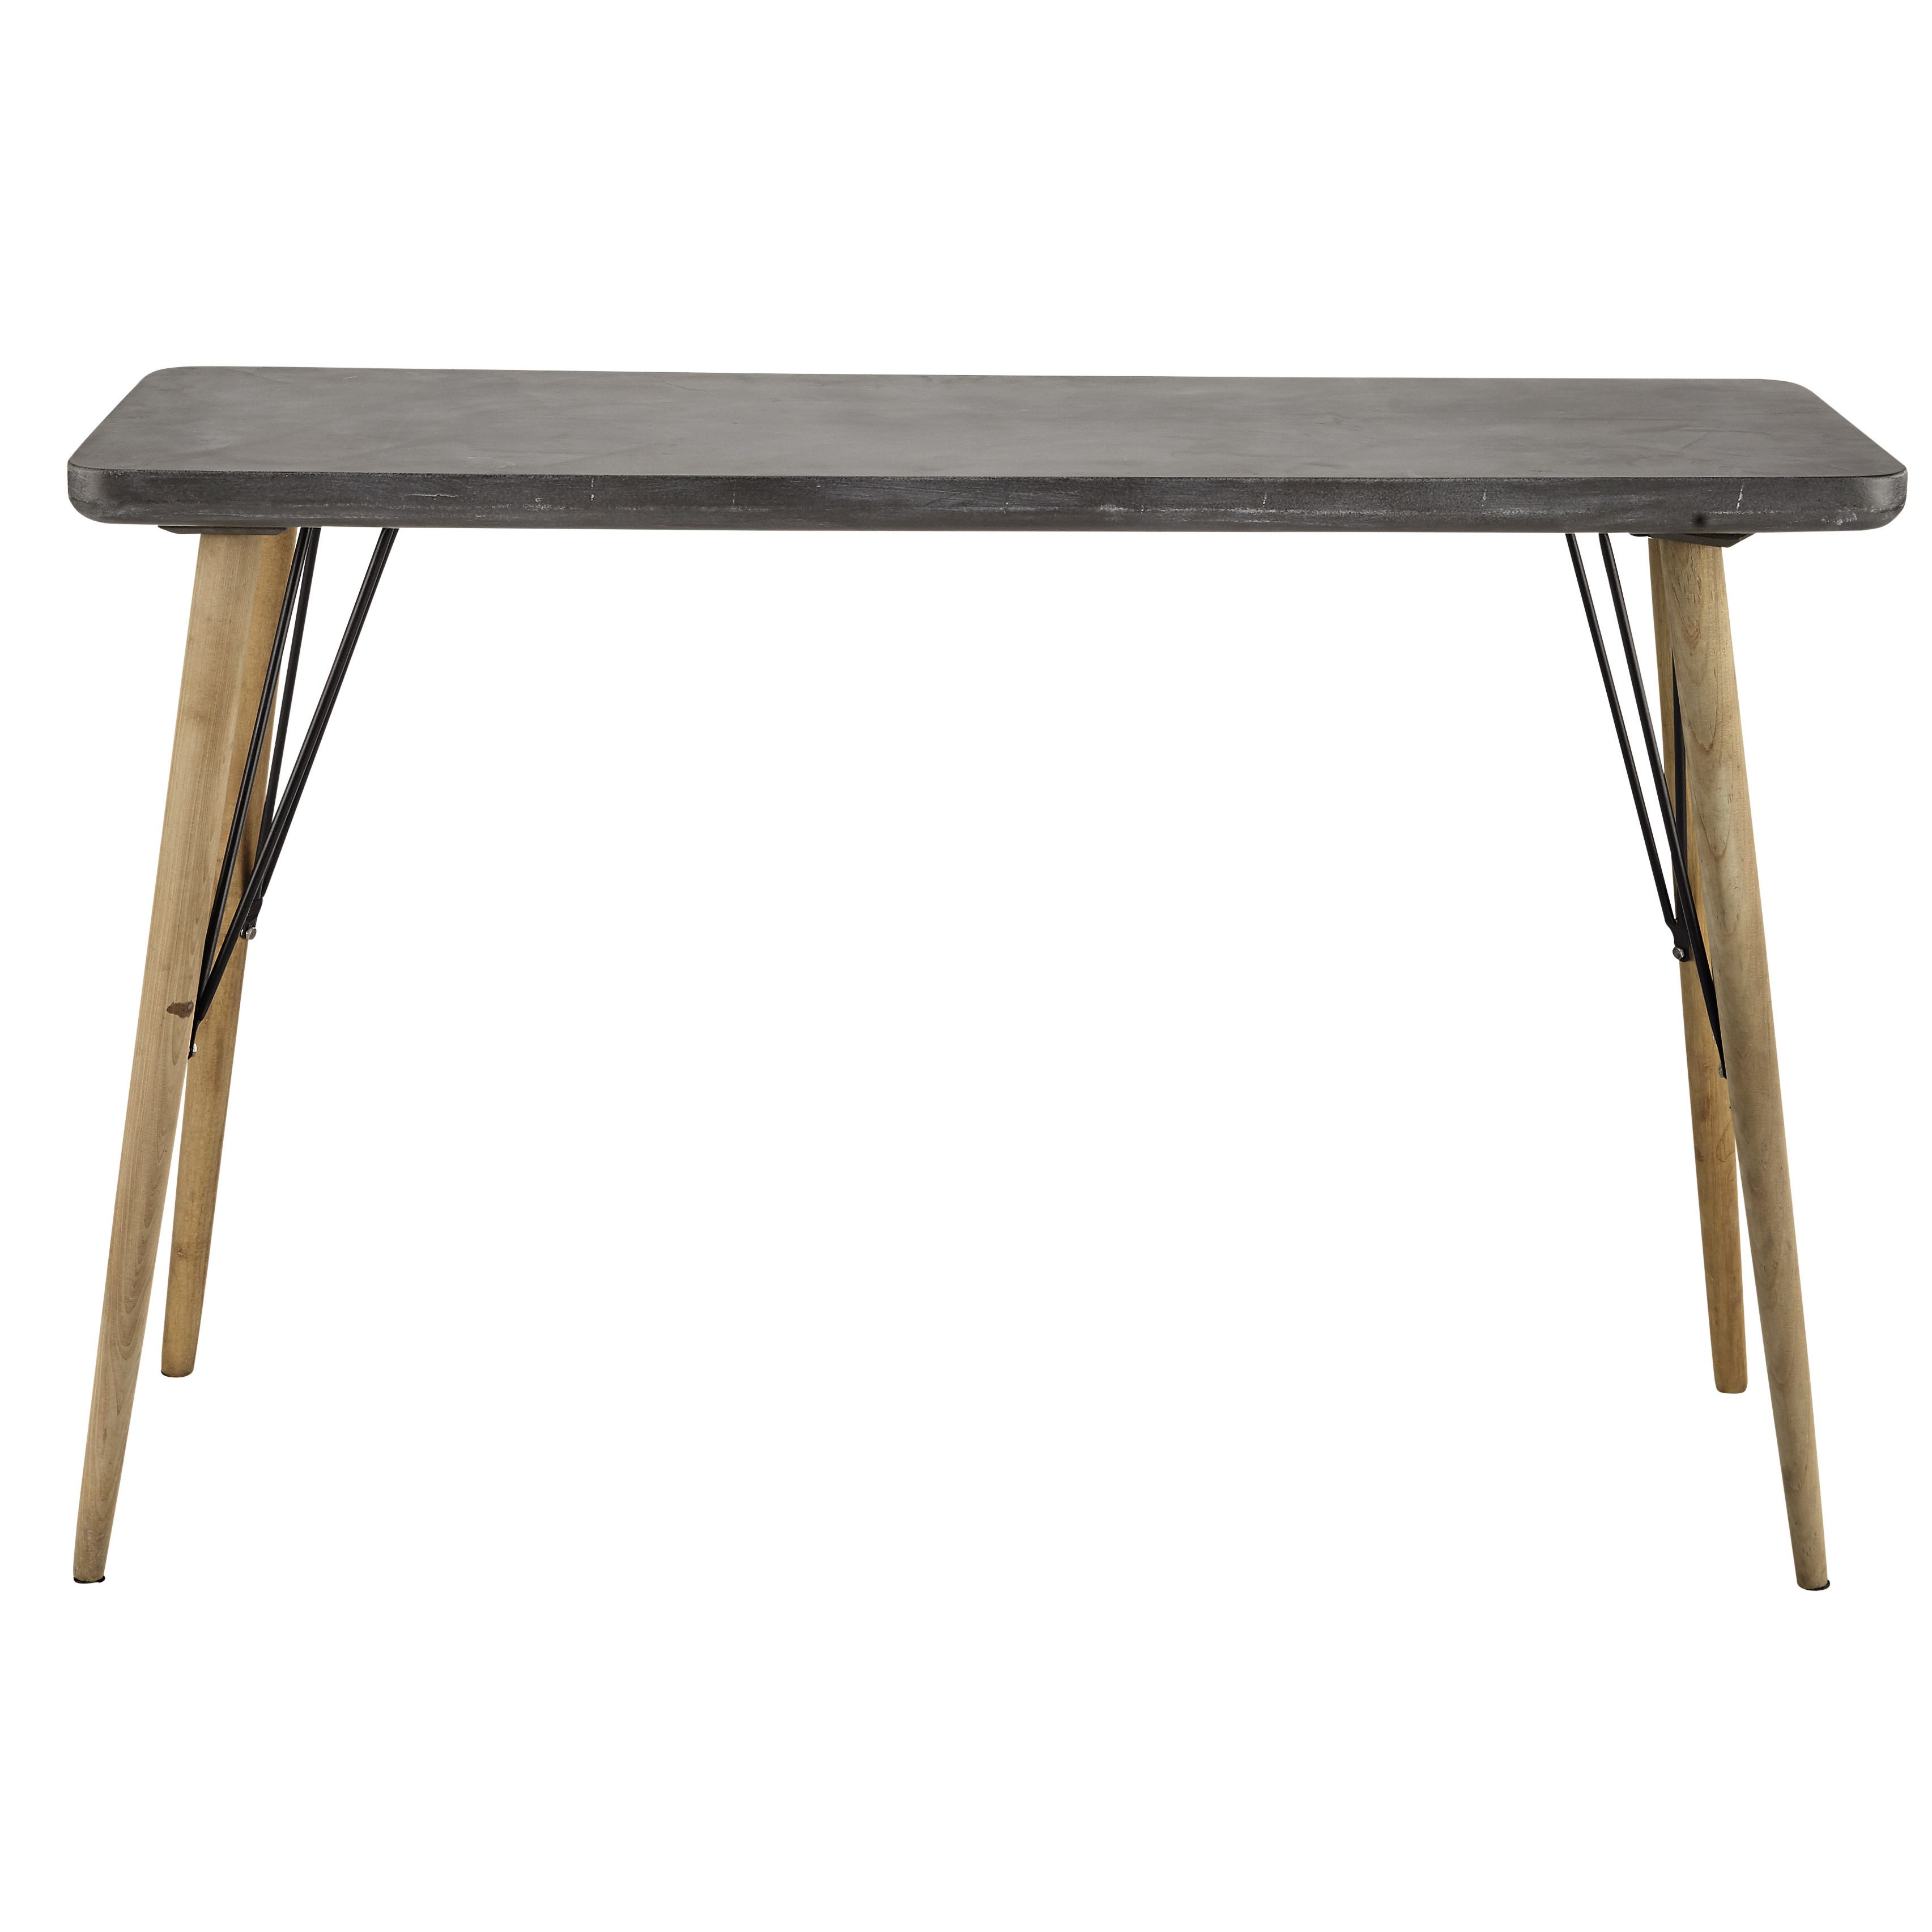 Table console grise | Cleveland, Consoles and Console tables